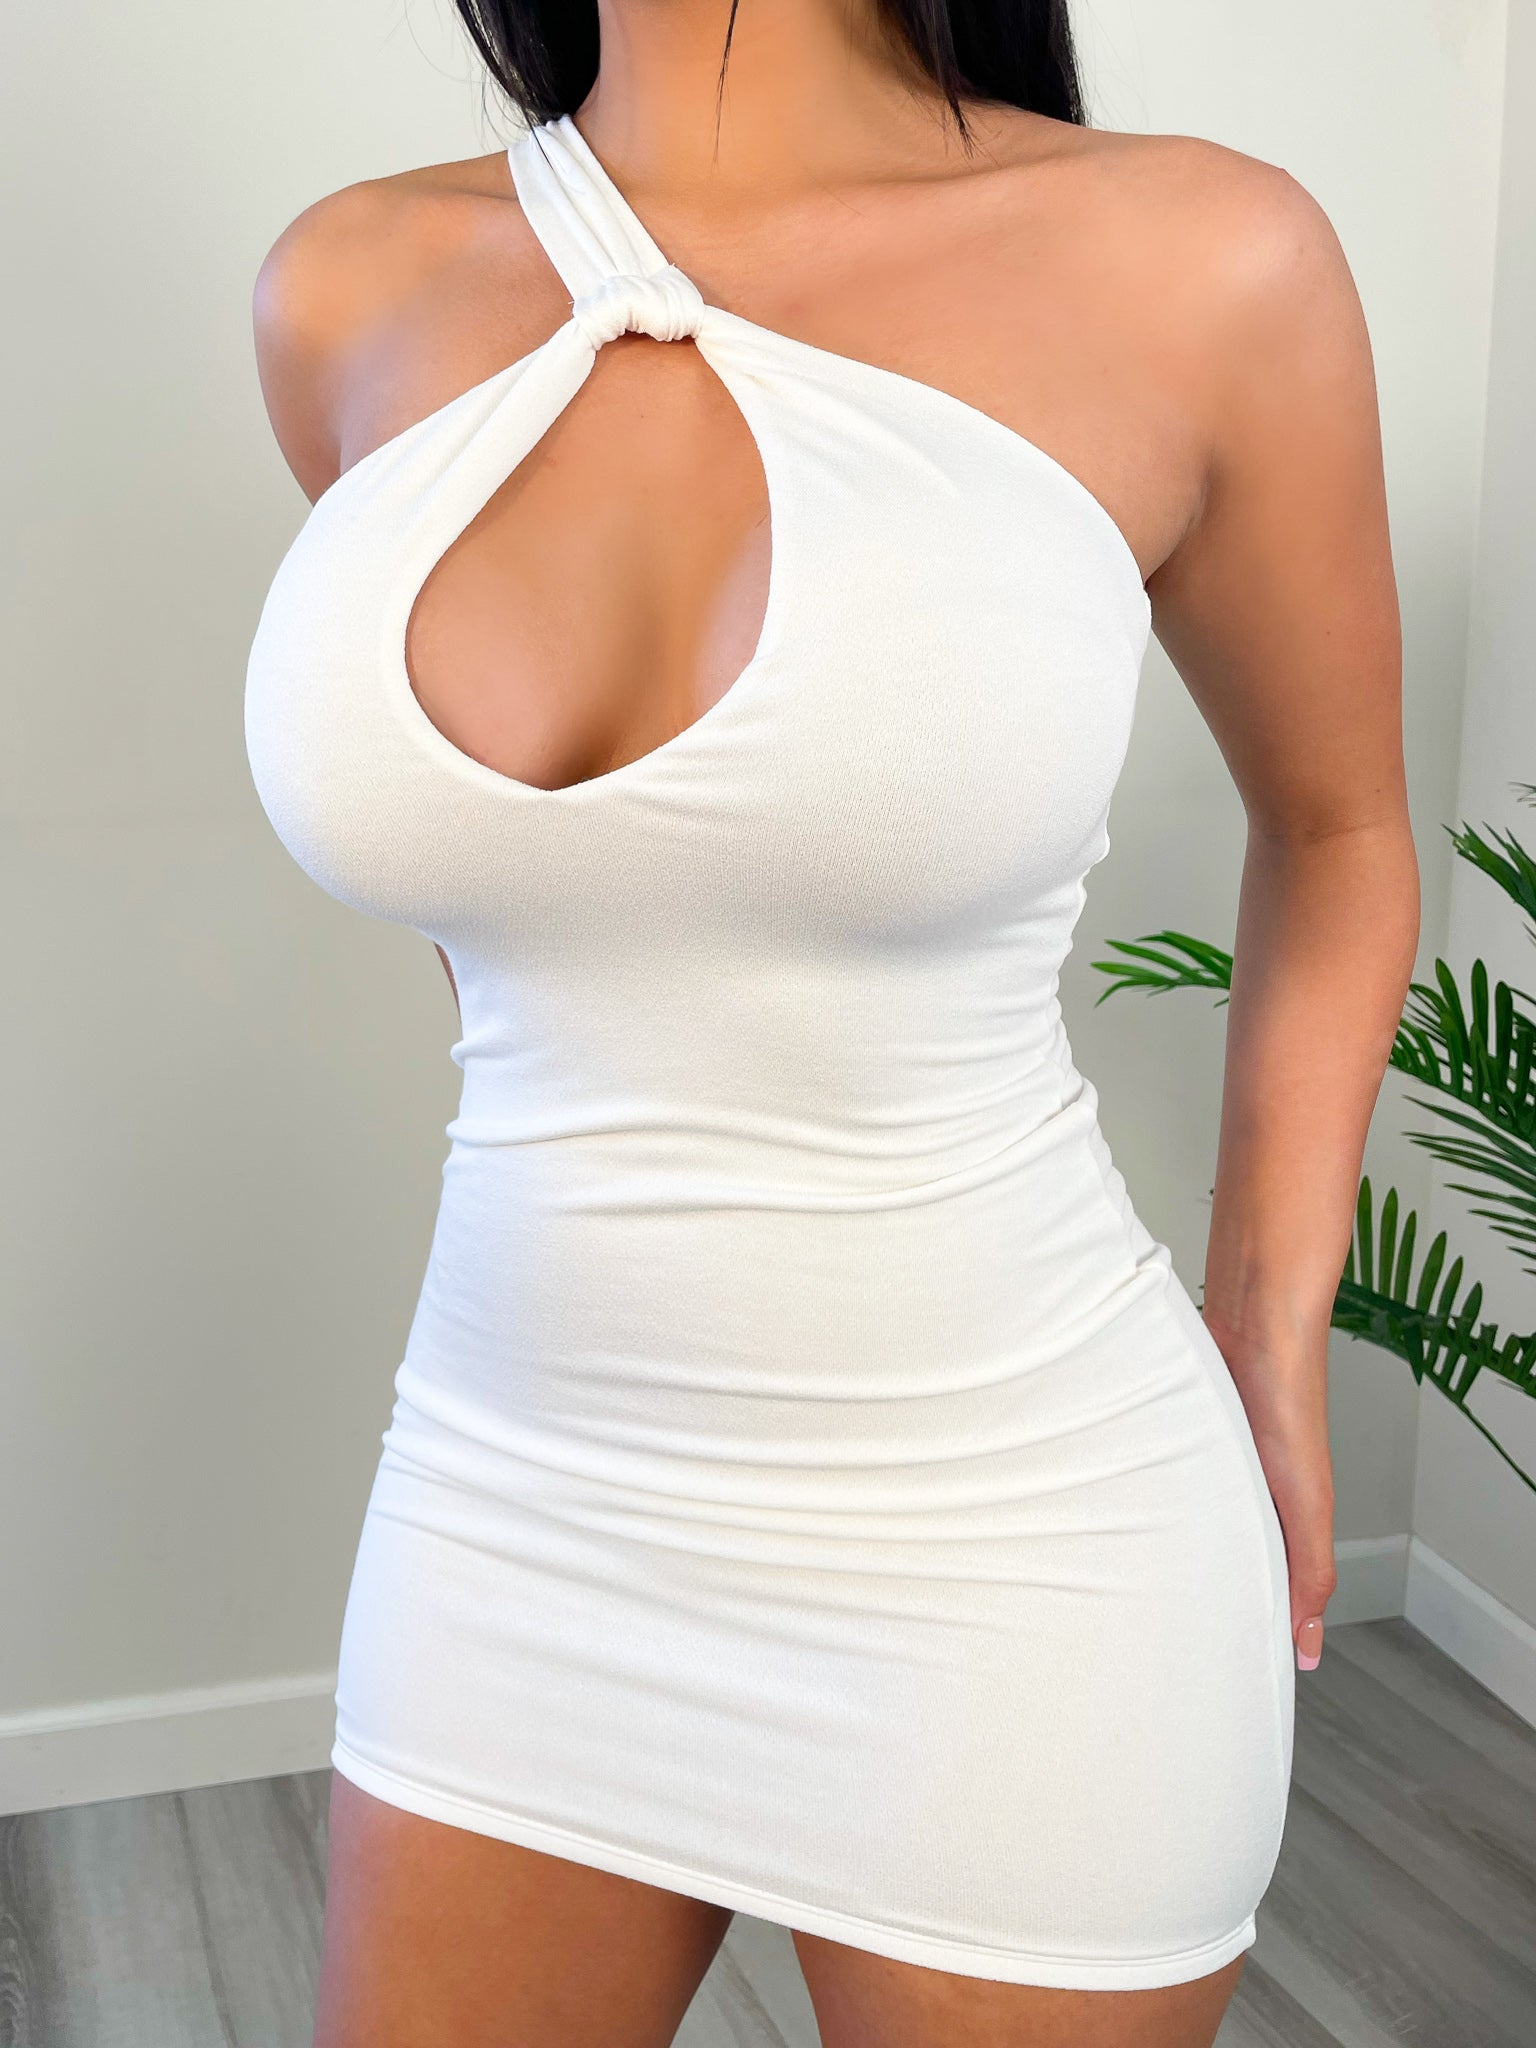 white mini dress, middle opening, one shoulder, backless